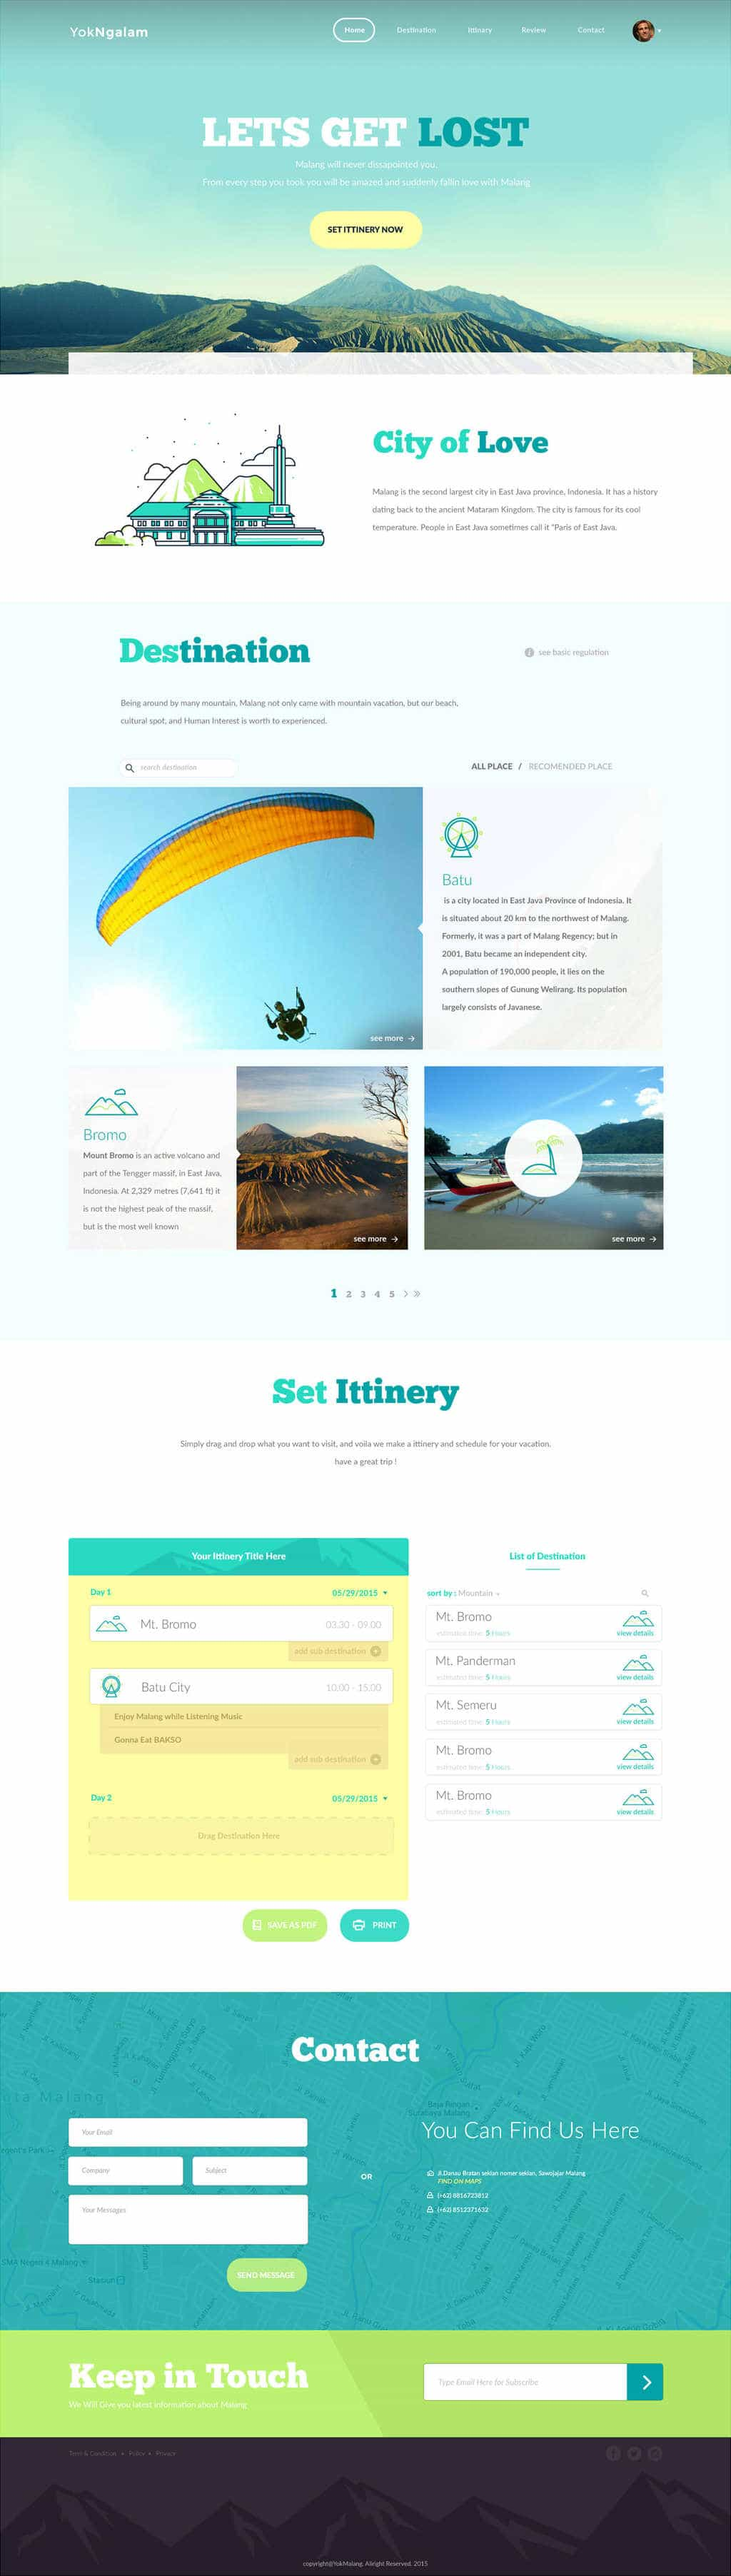 Daily Freebie: Flat Design Travel Tour Template (PSD)